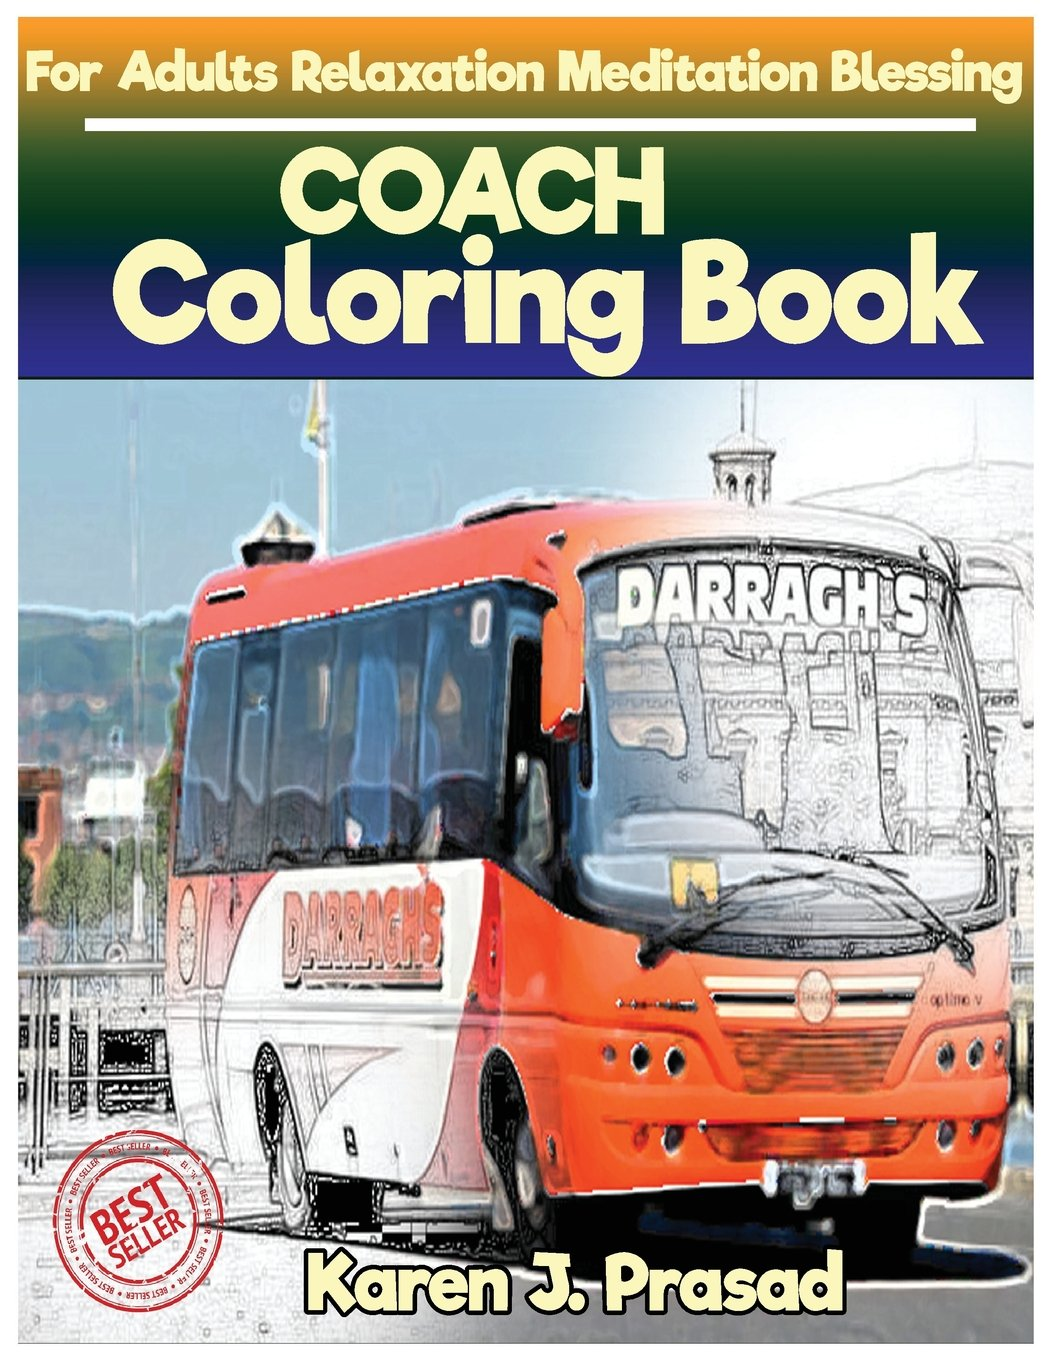 COACH Coloring book for Adults Relaxation  Meditation Blessing: Sketches Coloring Book  Grayscale Pictures pdf epub